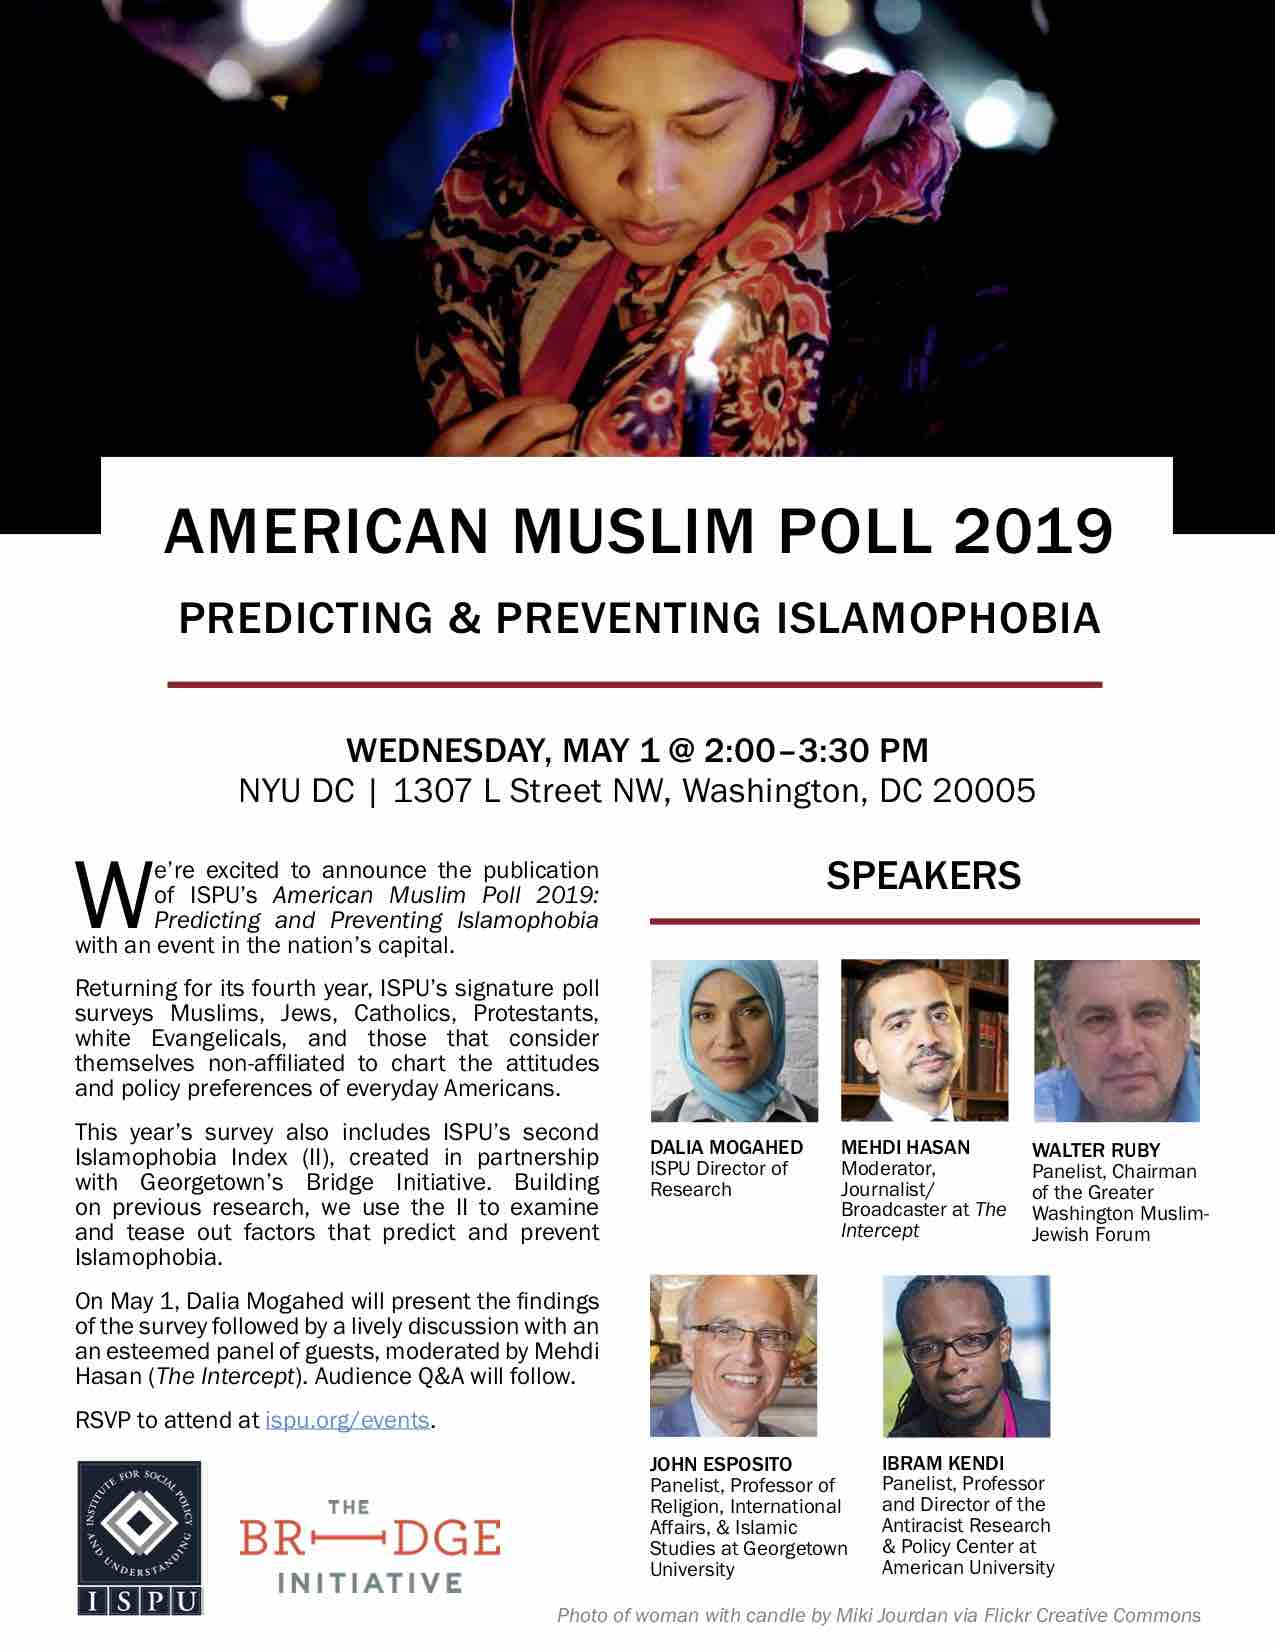 American Muslim Poll 2019 Launch Event flyer